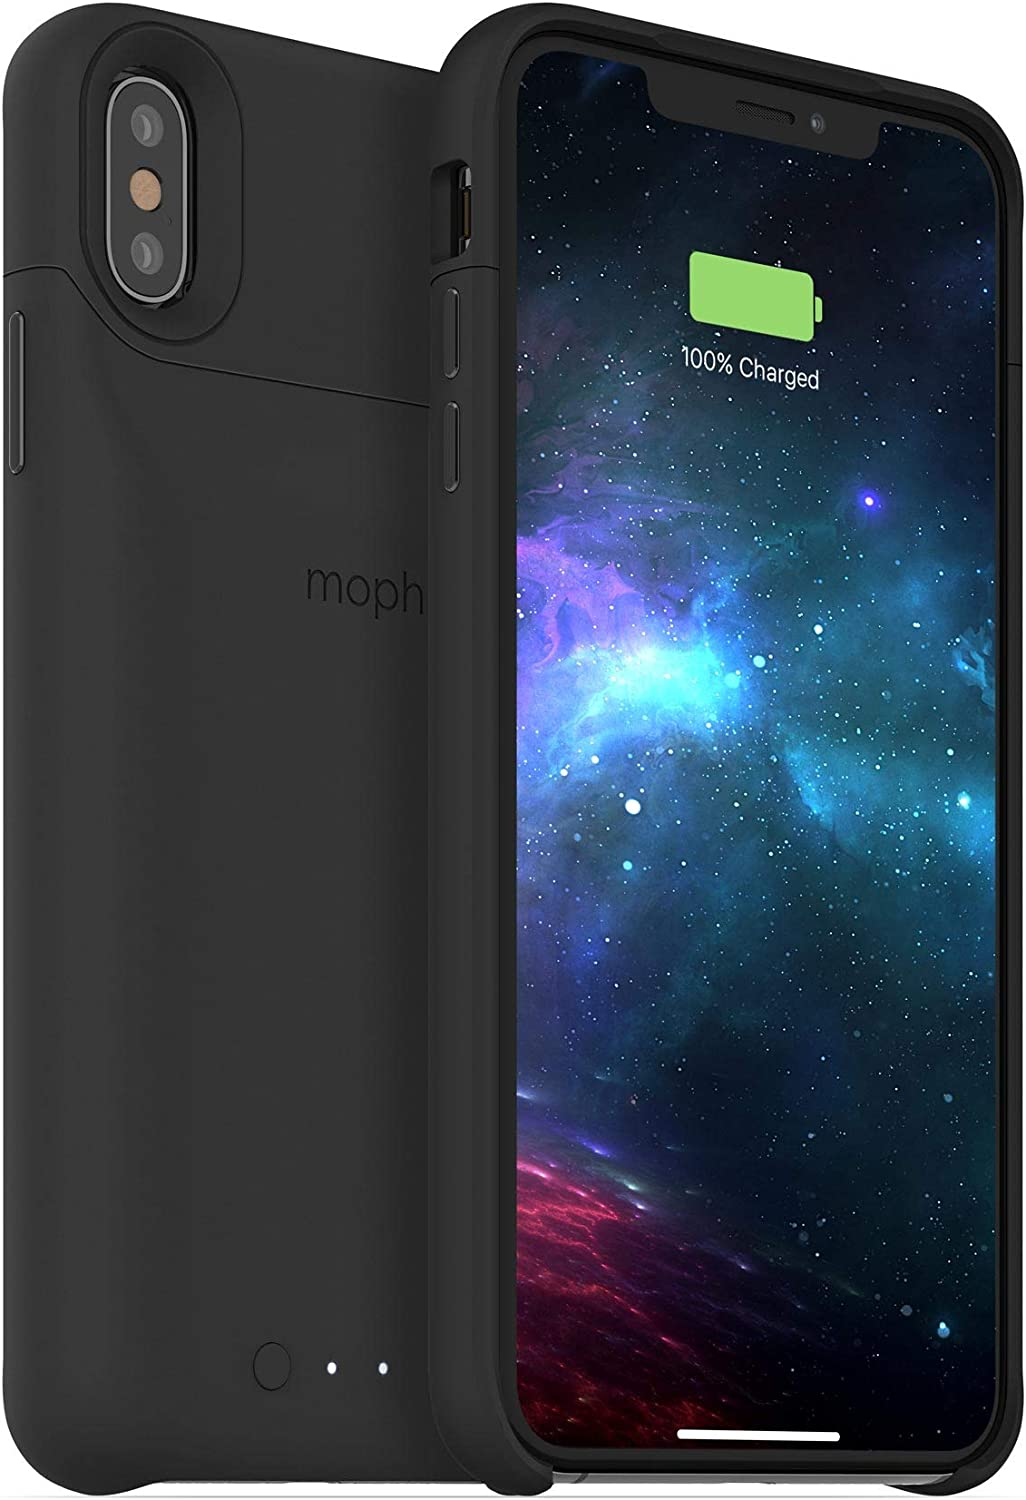 mophie Juice Pack Access - Ultra-Slim Wireless Battery Case - Made for Apple iPhone Xs Max (2,200mAh) - Black (401002835)